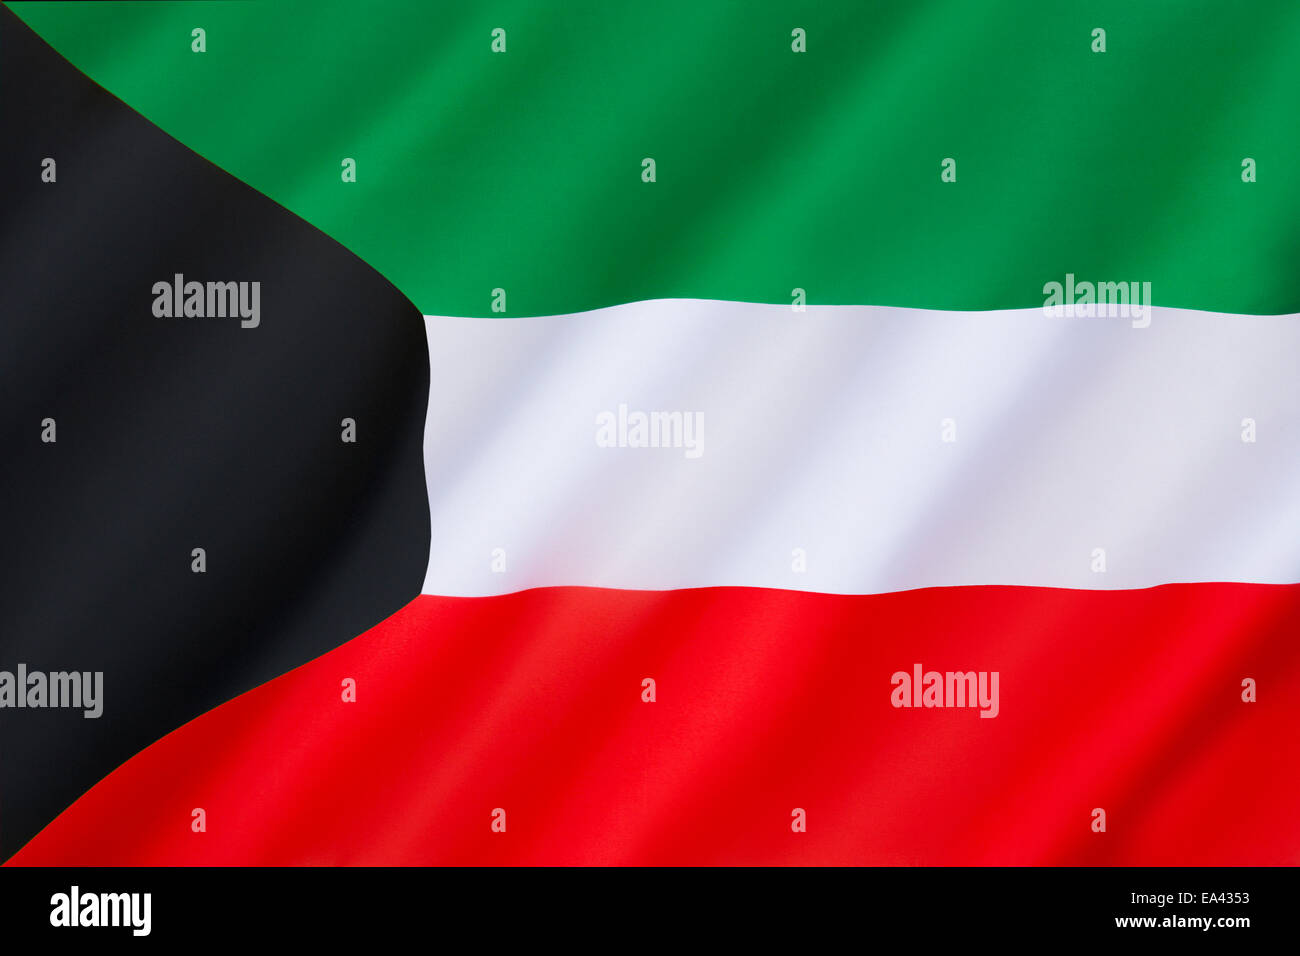 Flag of Kuwait - Stock Image